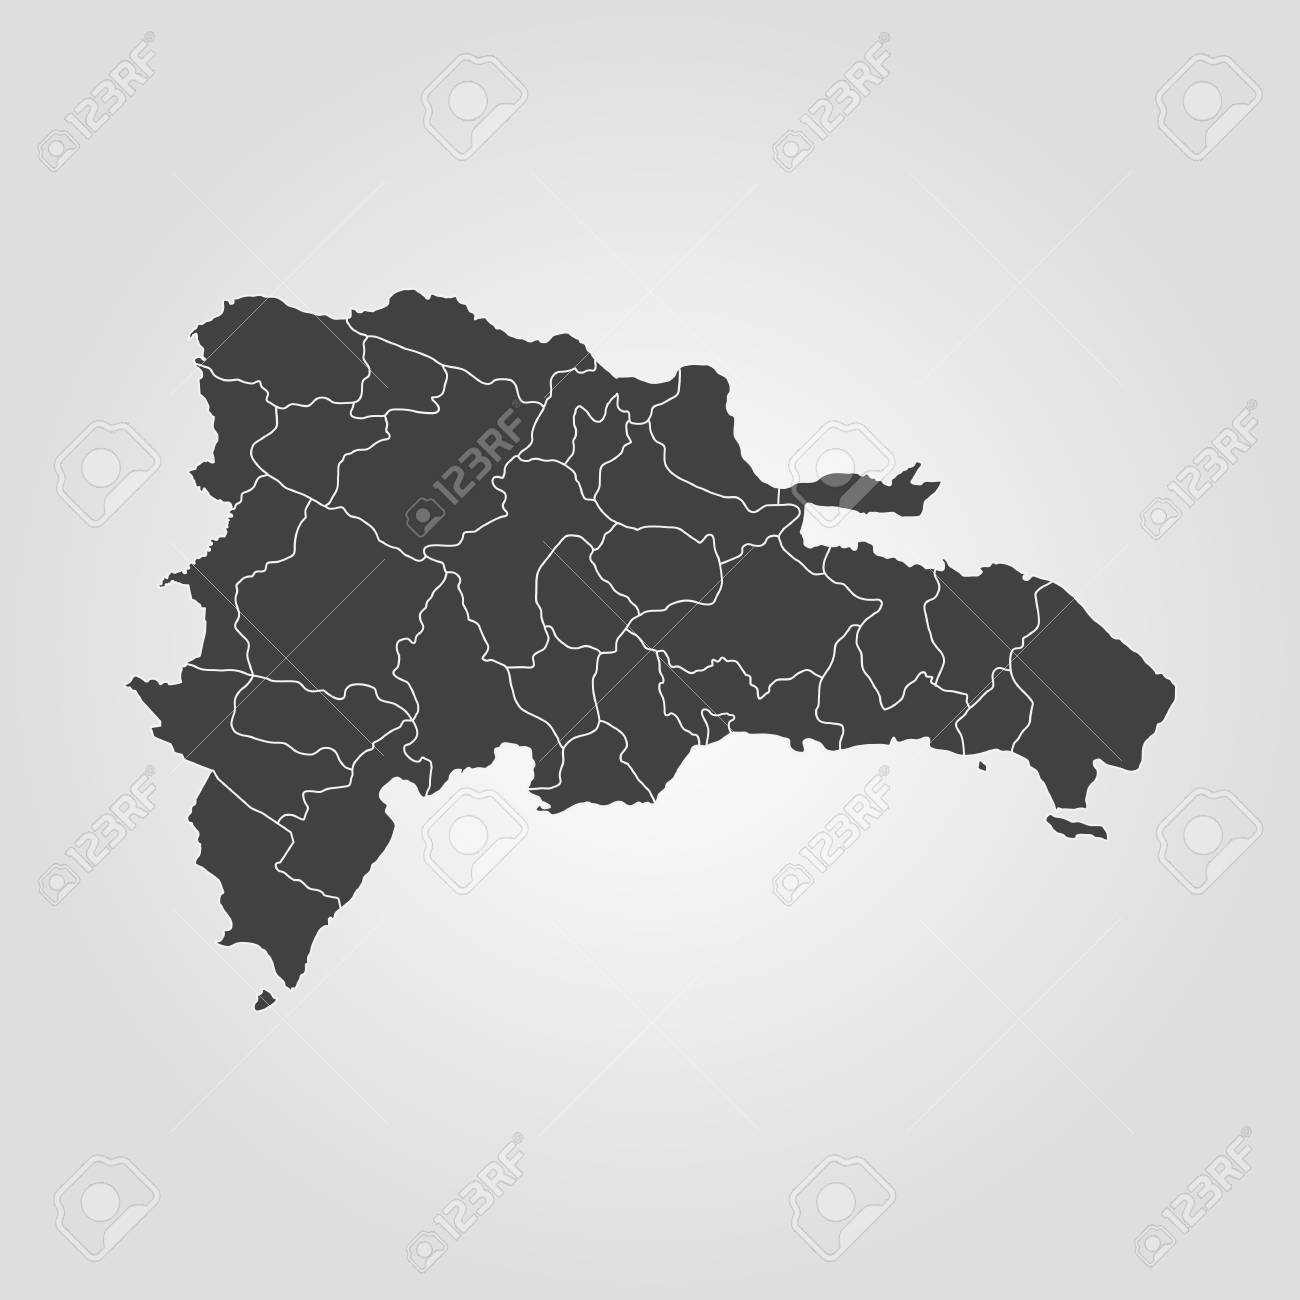 Map of dominican republic vector illustration world map royalty map of dominican republic vector illustration world map stock vector 92712845 publicscrutiny Choice Image